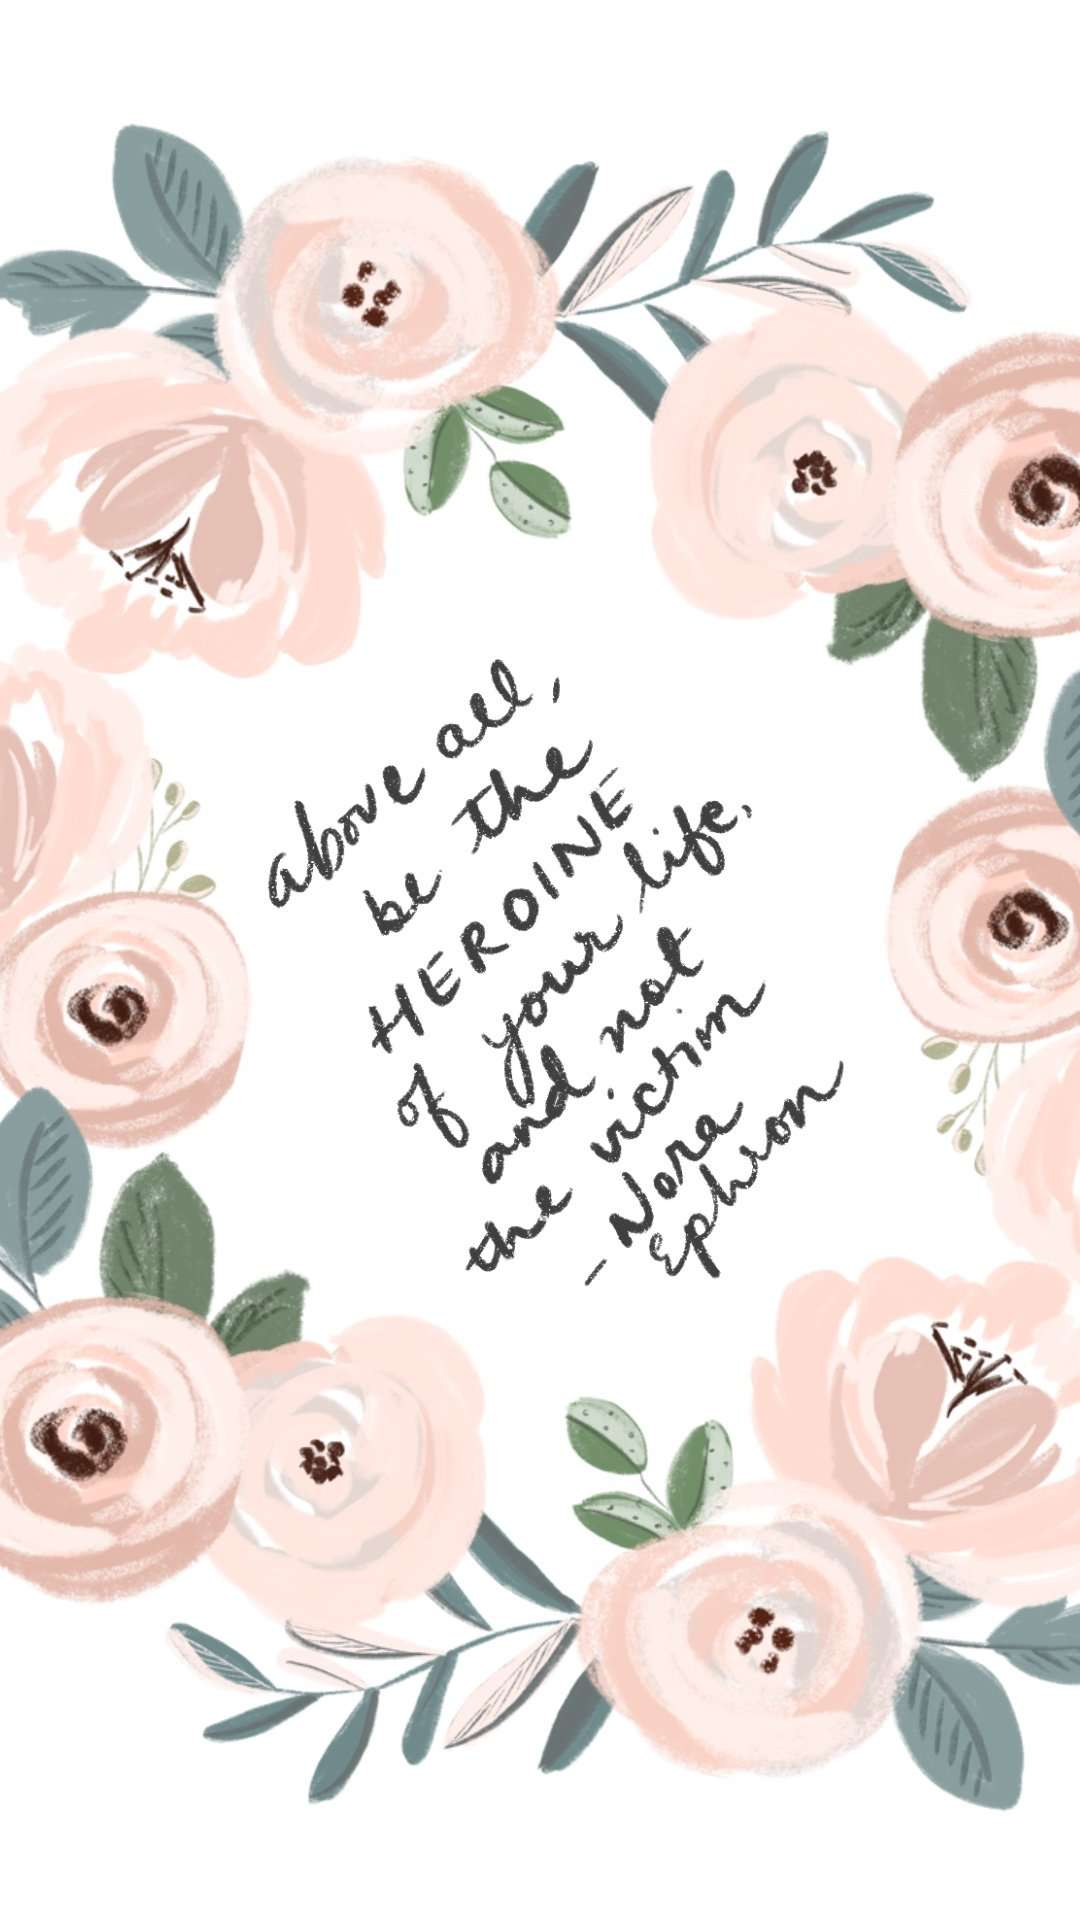 Motivational Quote Poster, Inspirational Quote with Watercolor Flowers Iphone Lockscreen Wallpaper from Essem Creatives